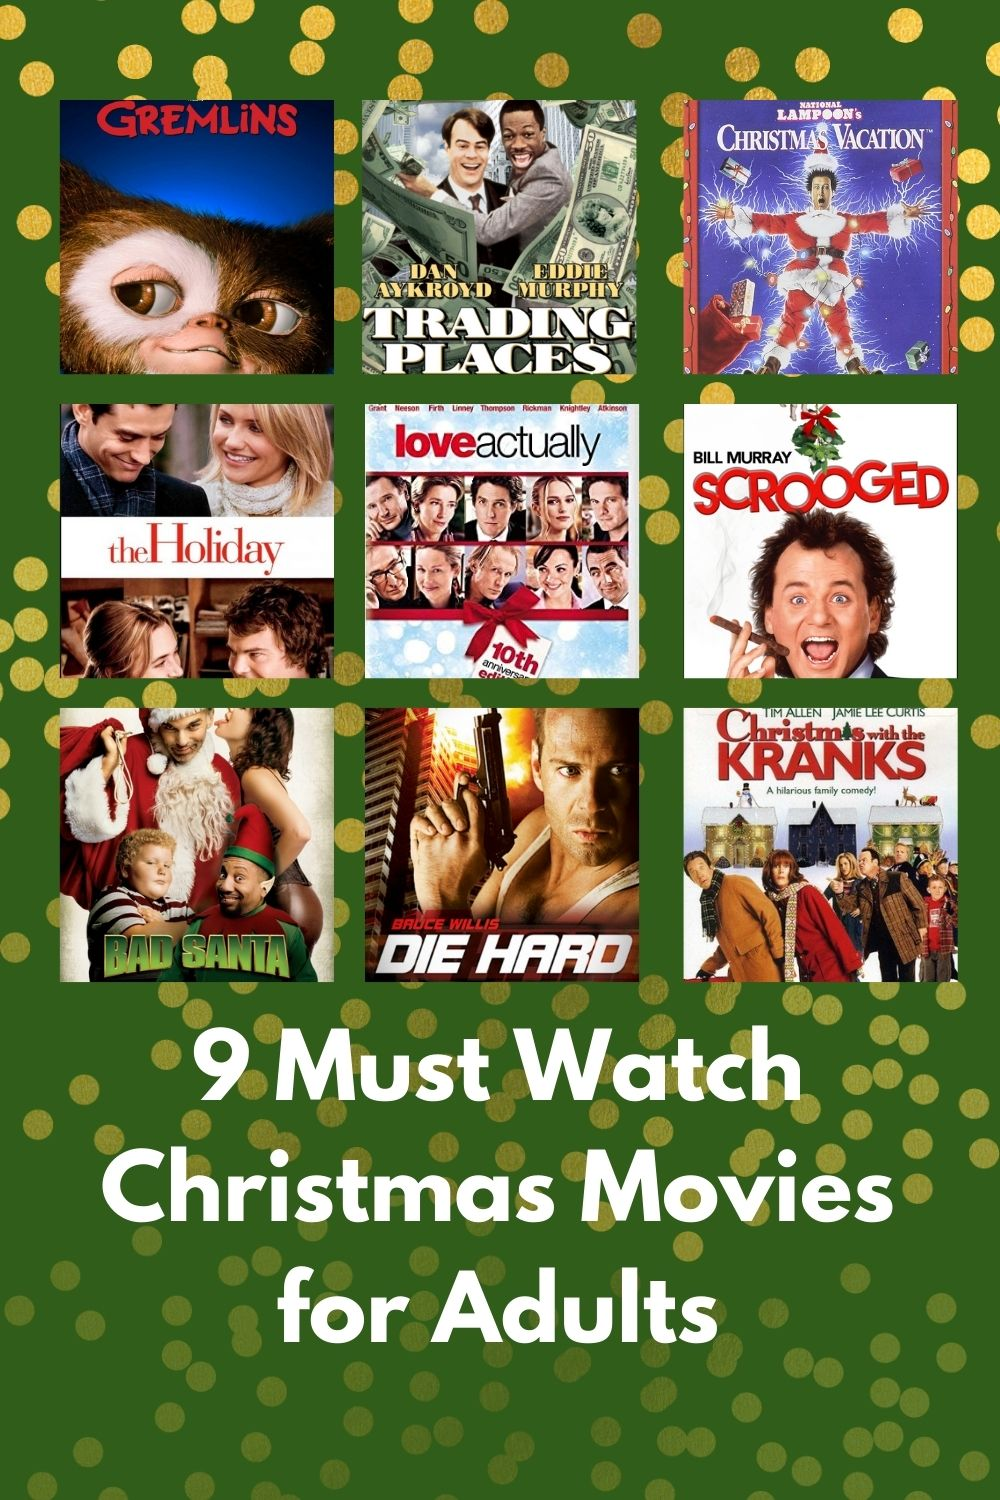 9 Christmas Movies for Adults - Funny Christmas movies to watch without kids